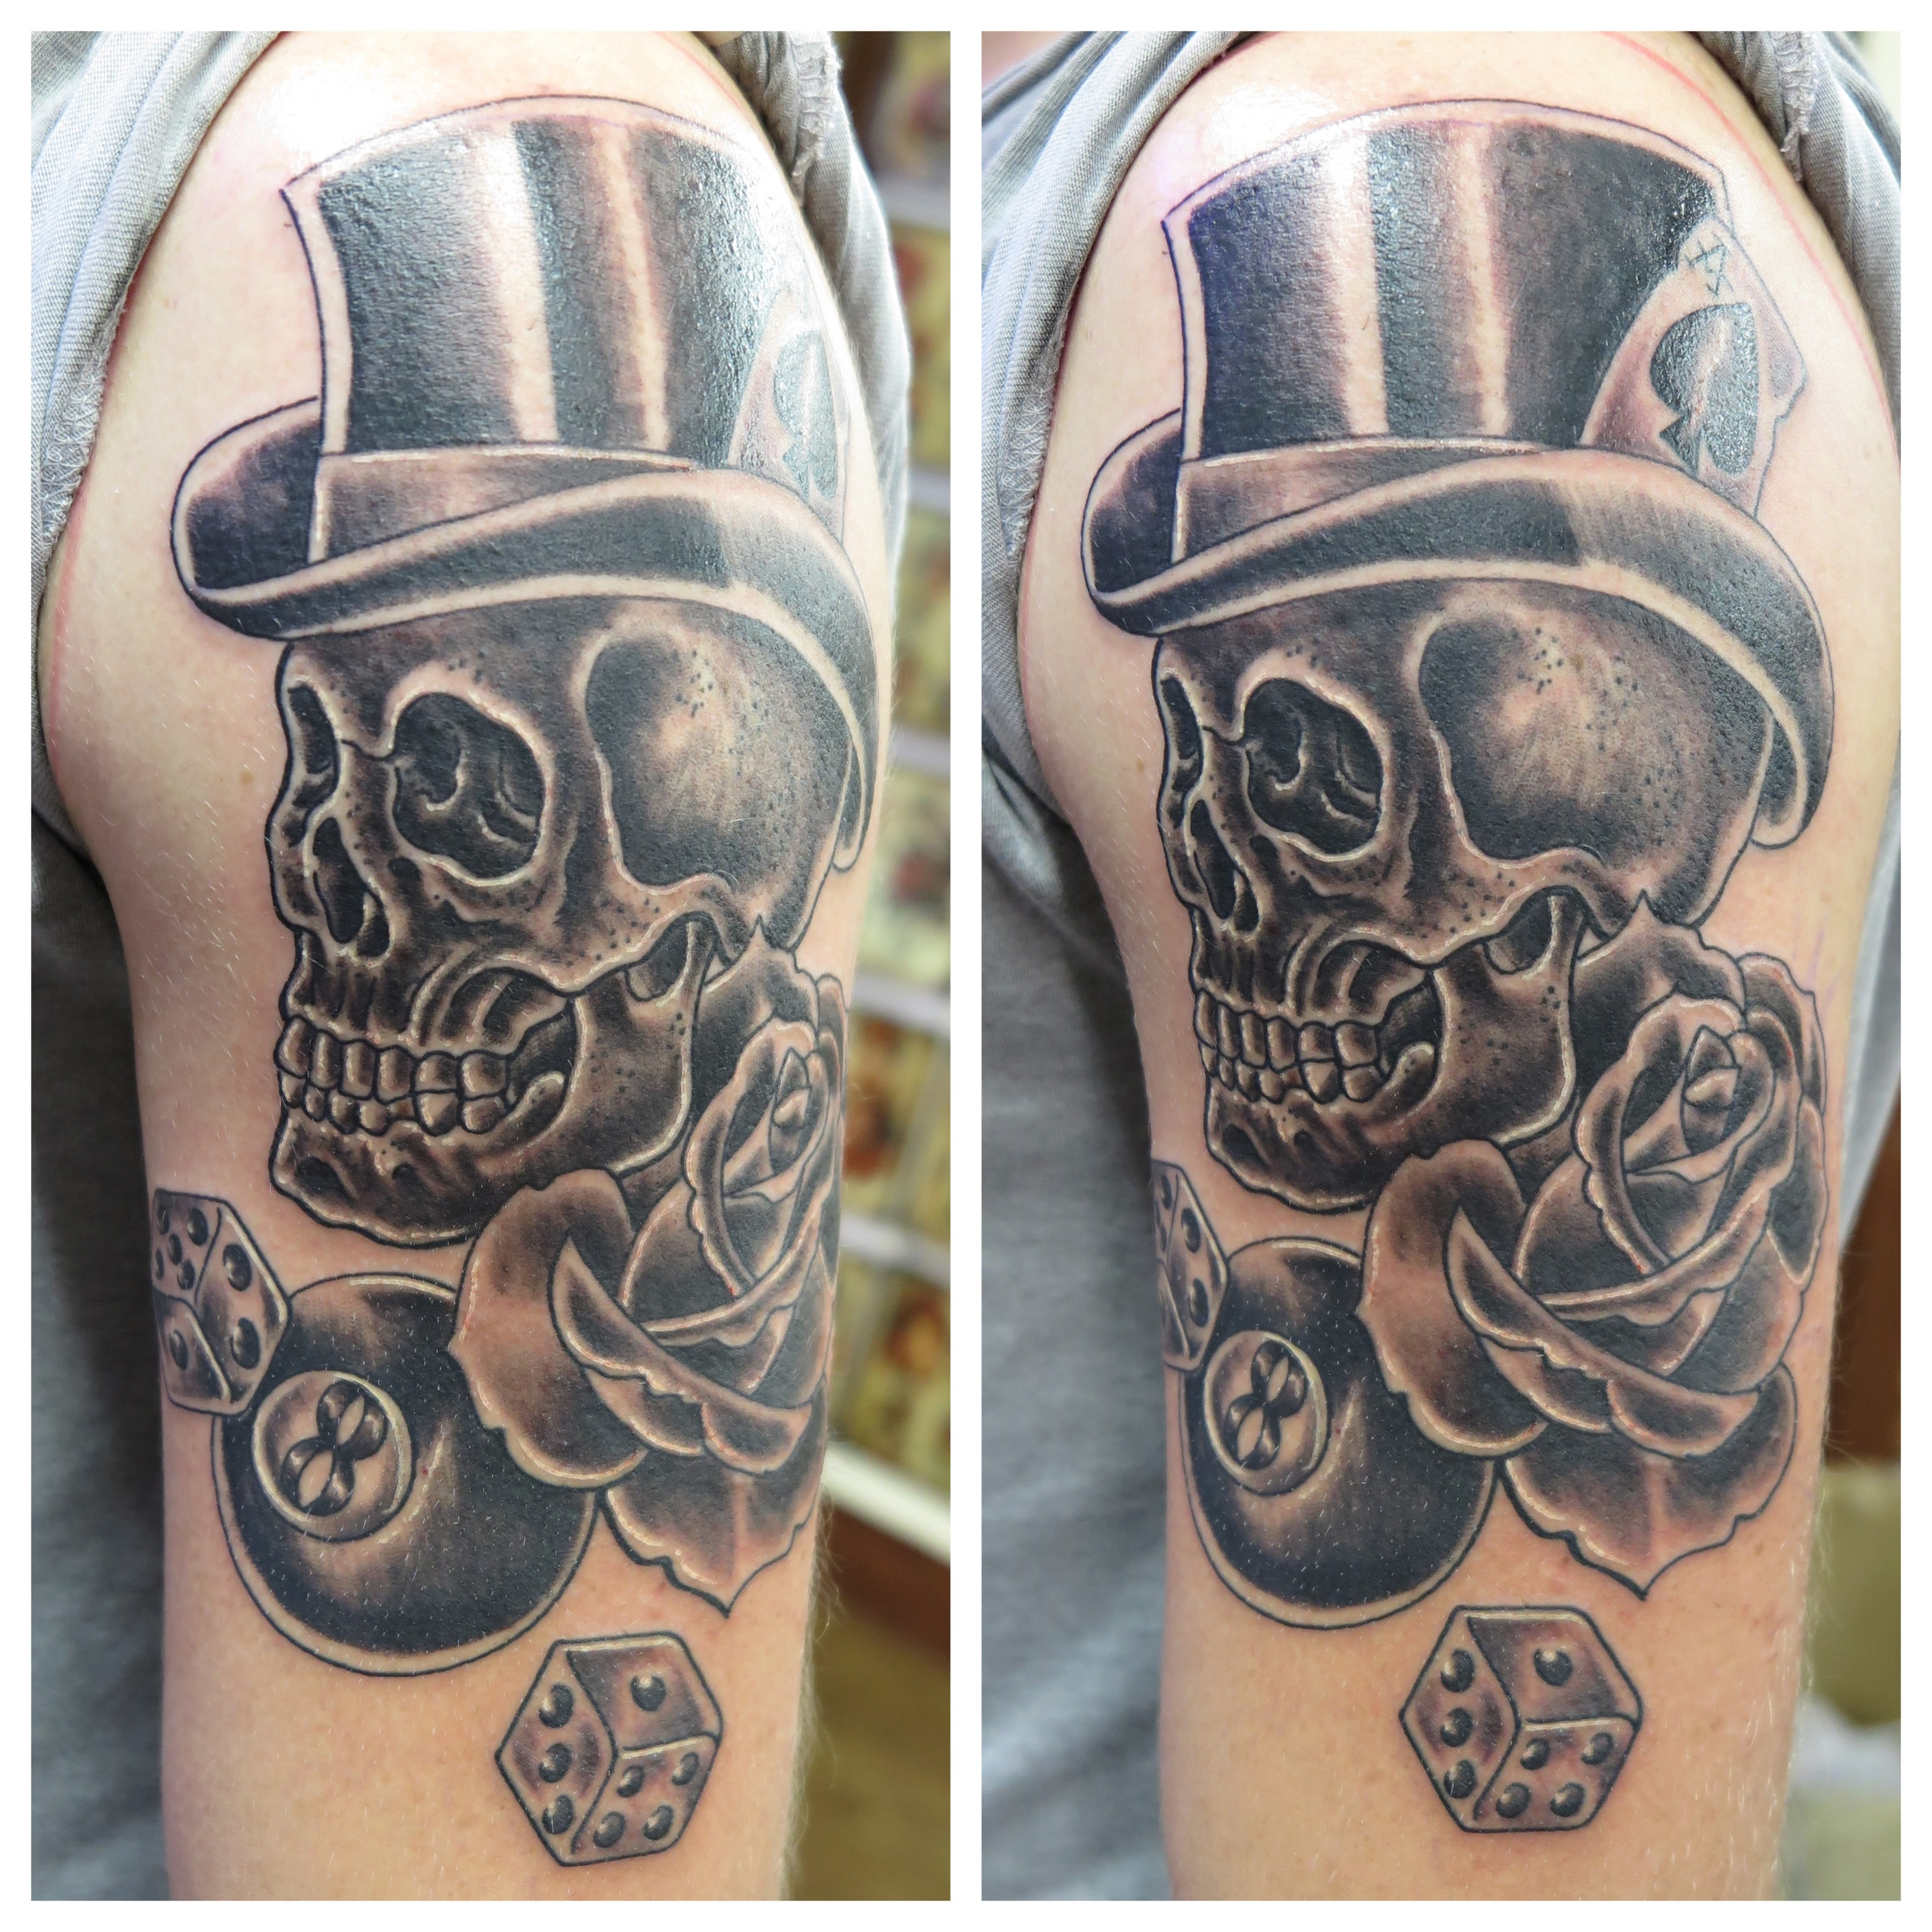 Skulls With Top Hats Skull Top Hat Tattoo